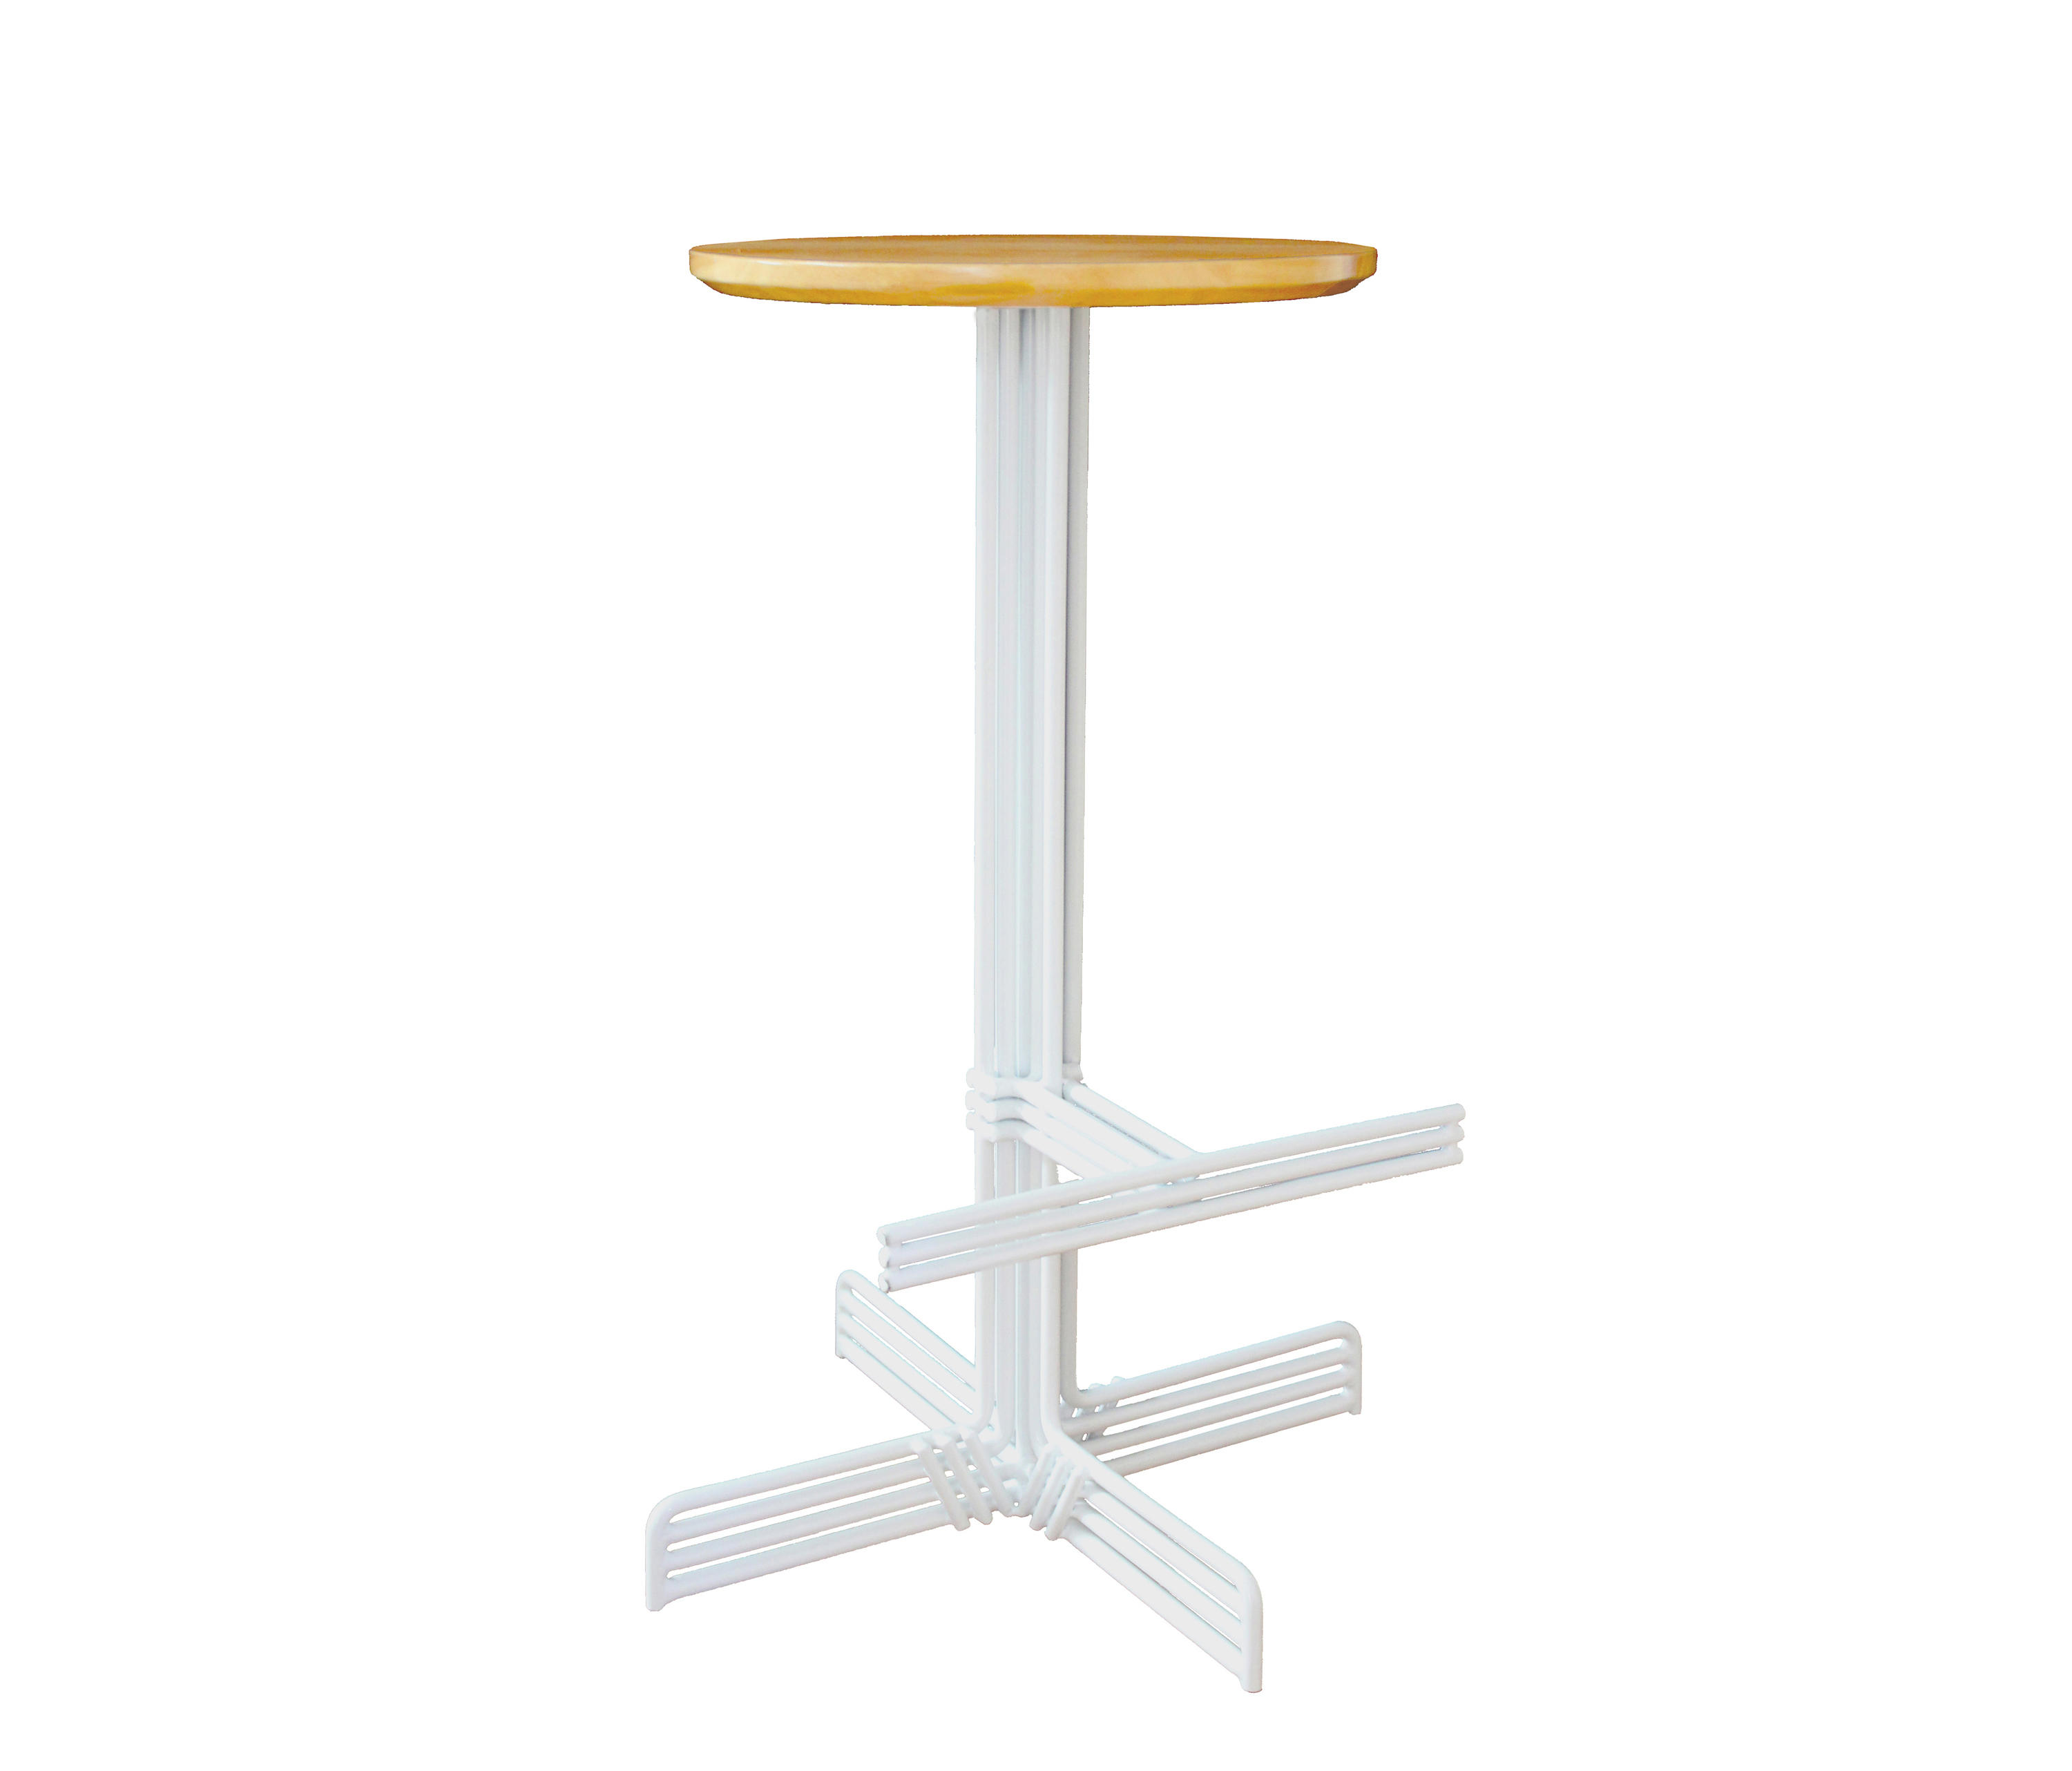 The Stick Stool Counter Stools From Bend Goods Architonic